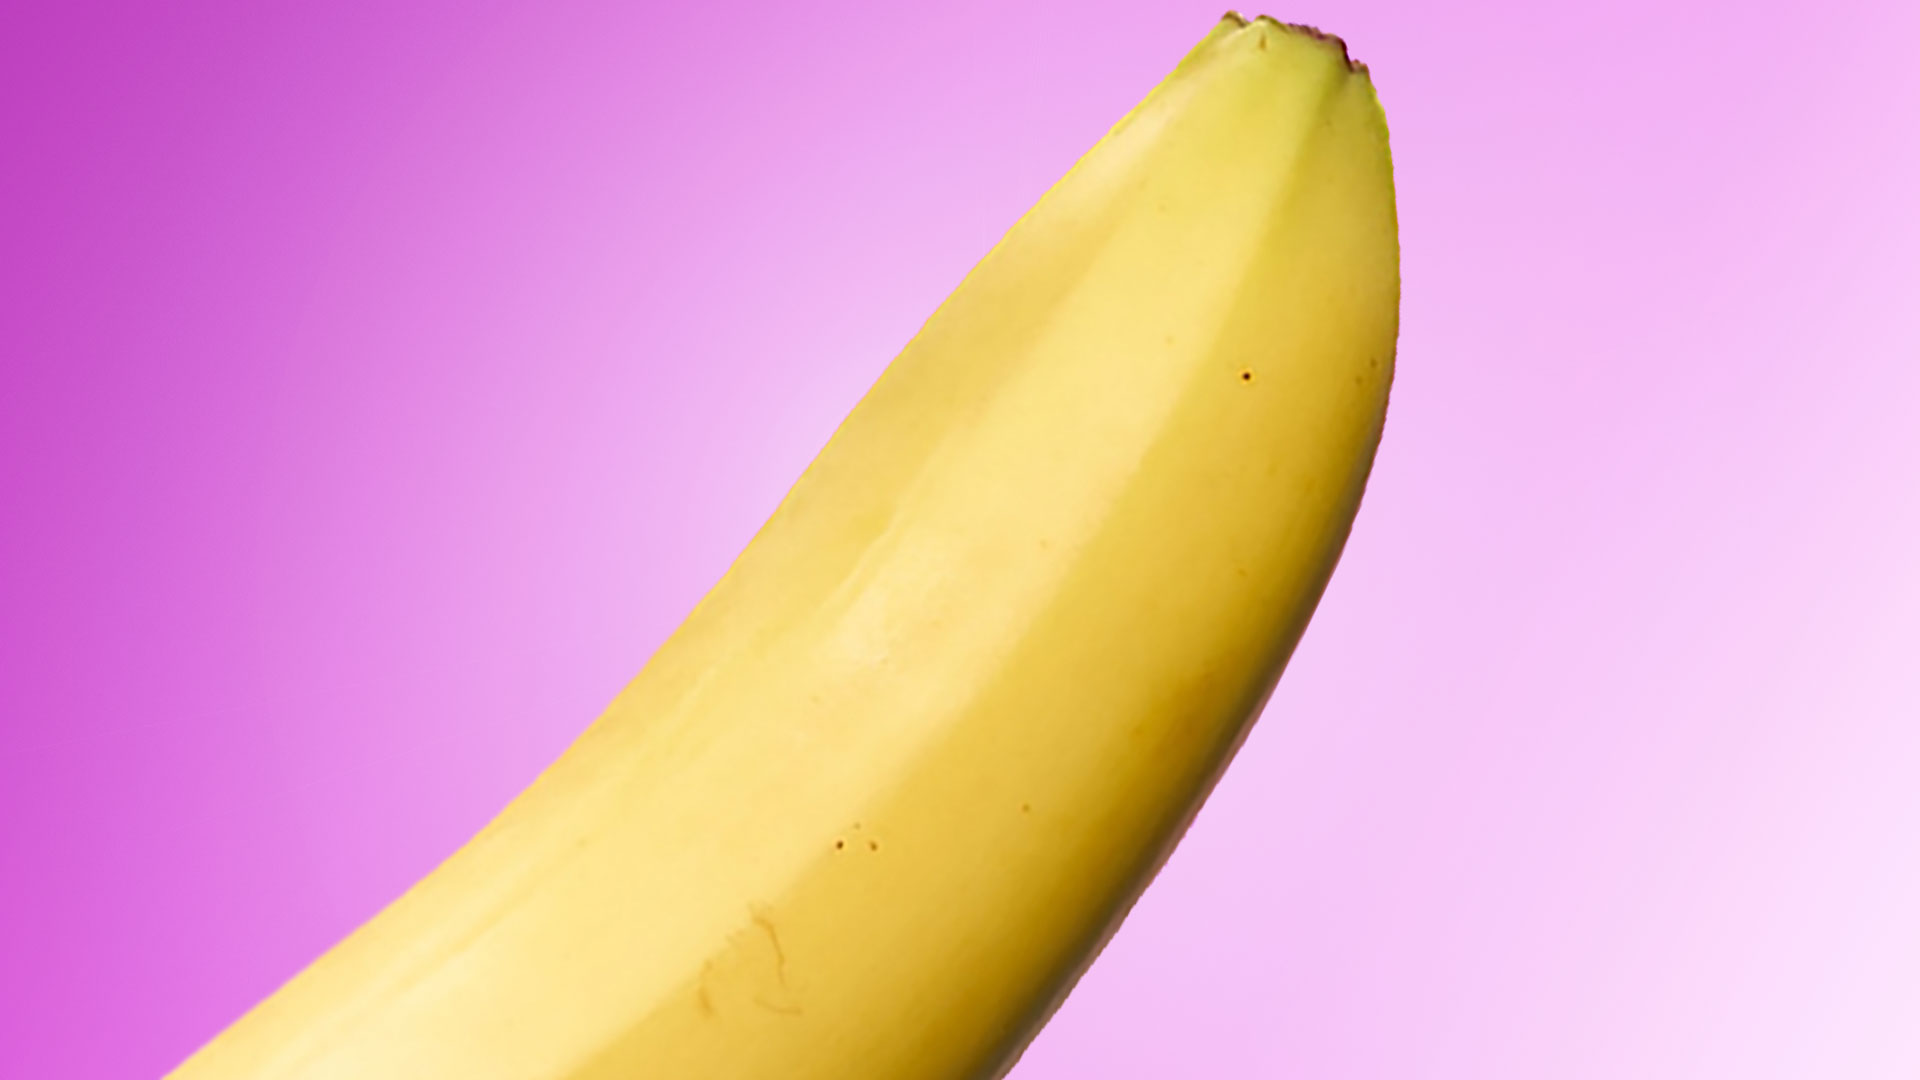 Strong gay bananas